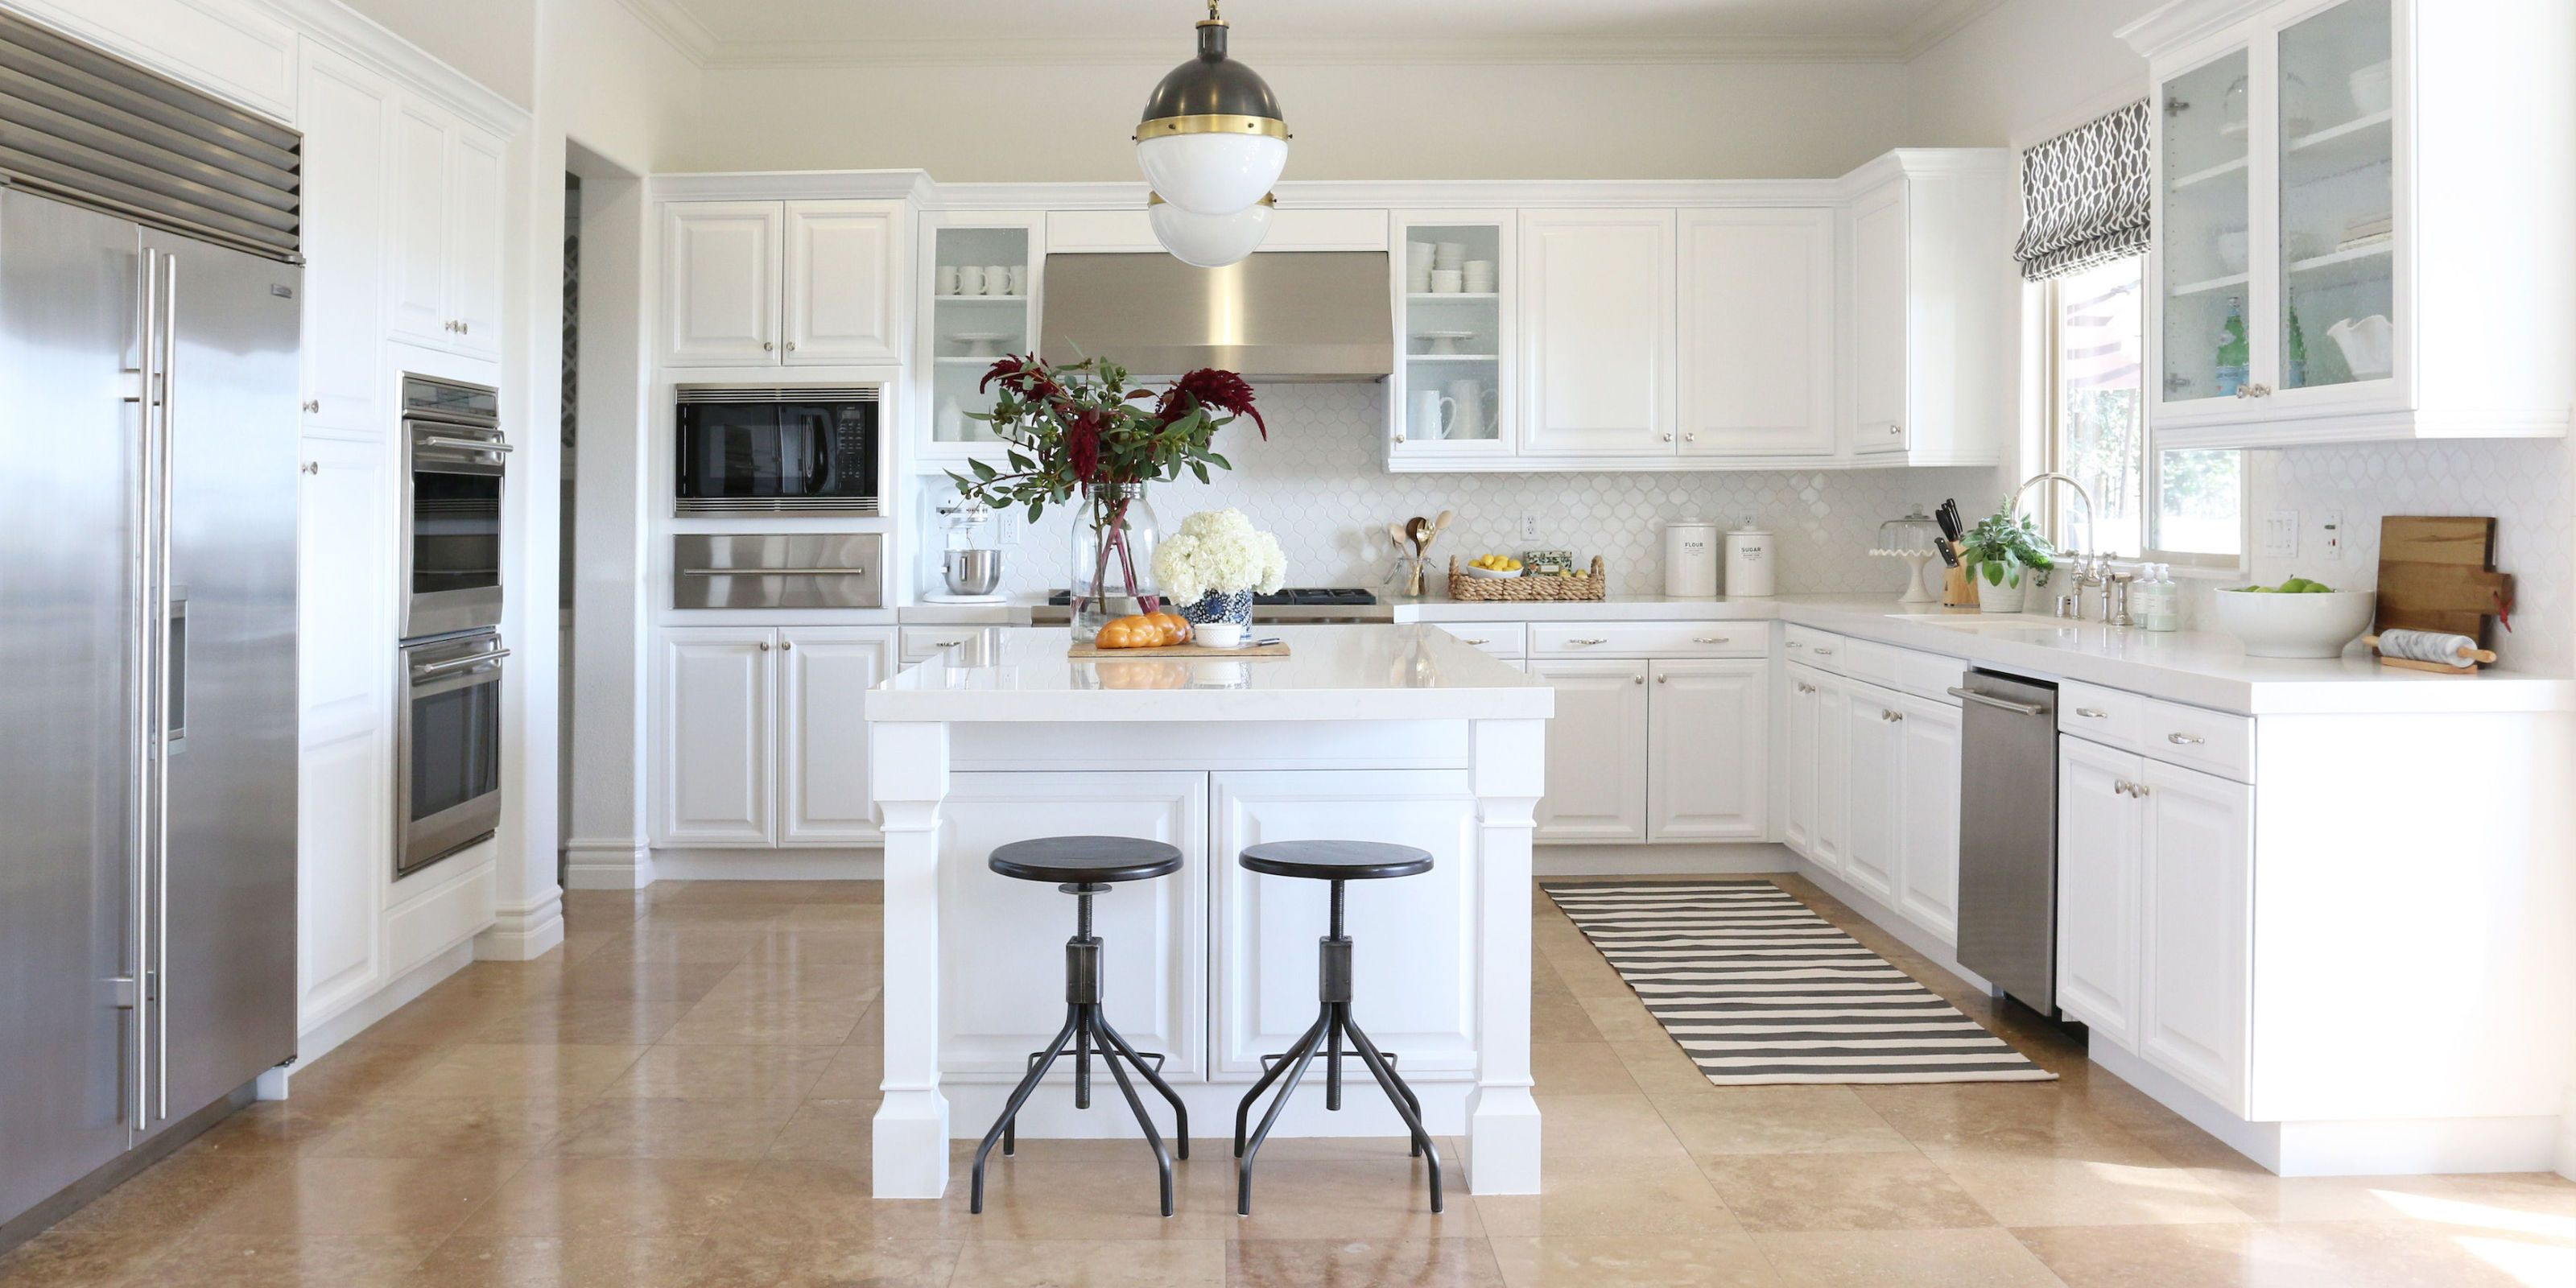 14 Best White Kitchen Cabinets , Design Ideas for White Cabinets